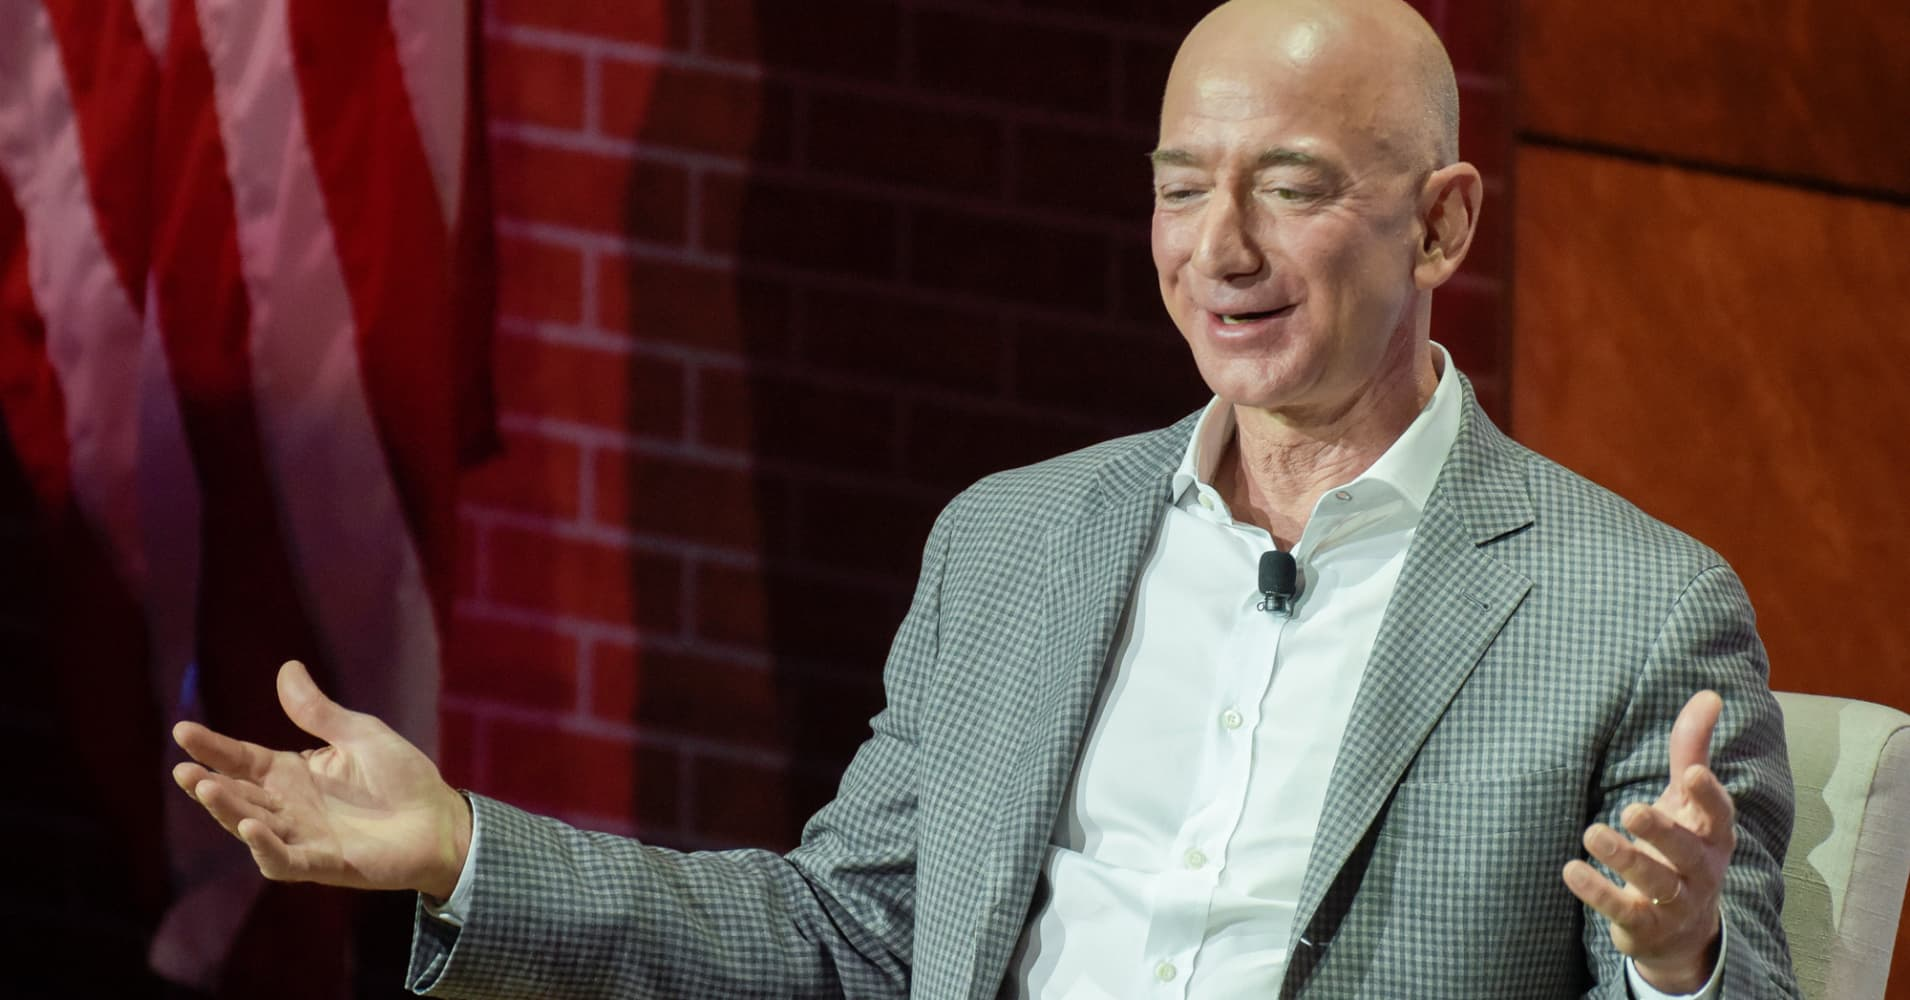 Amazon just launched a lending service in China while shuttering its local marketplace